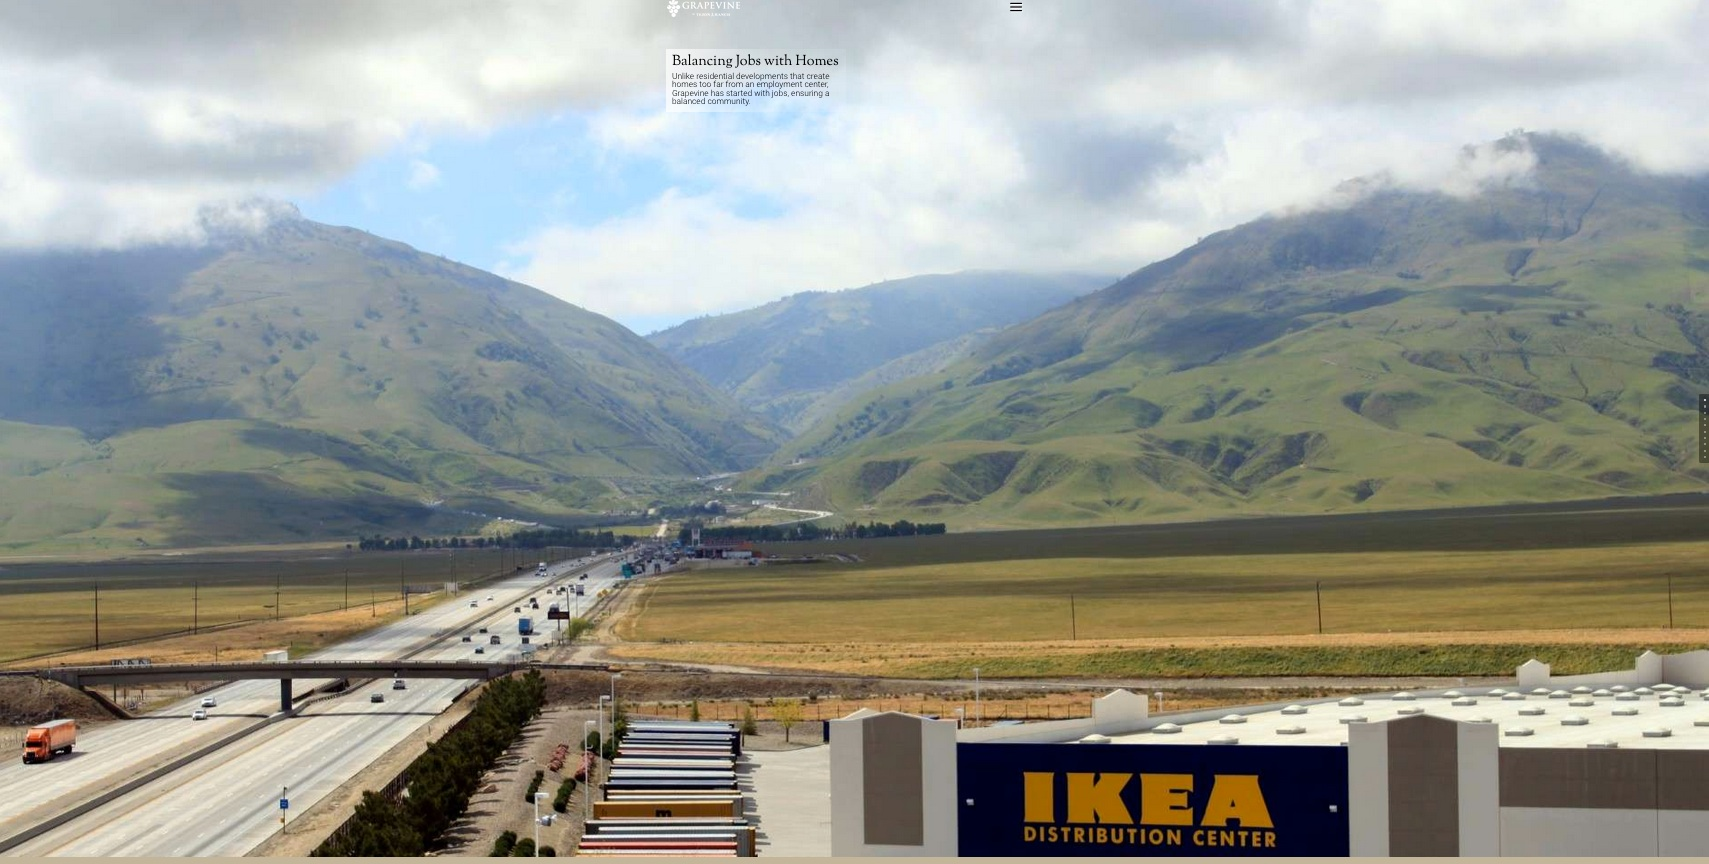 Ikea jobs homes copy the mountain enterprise for Ikea call center careers